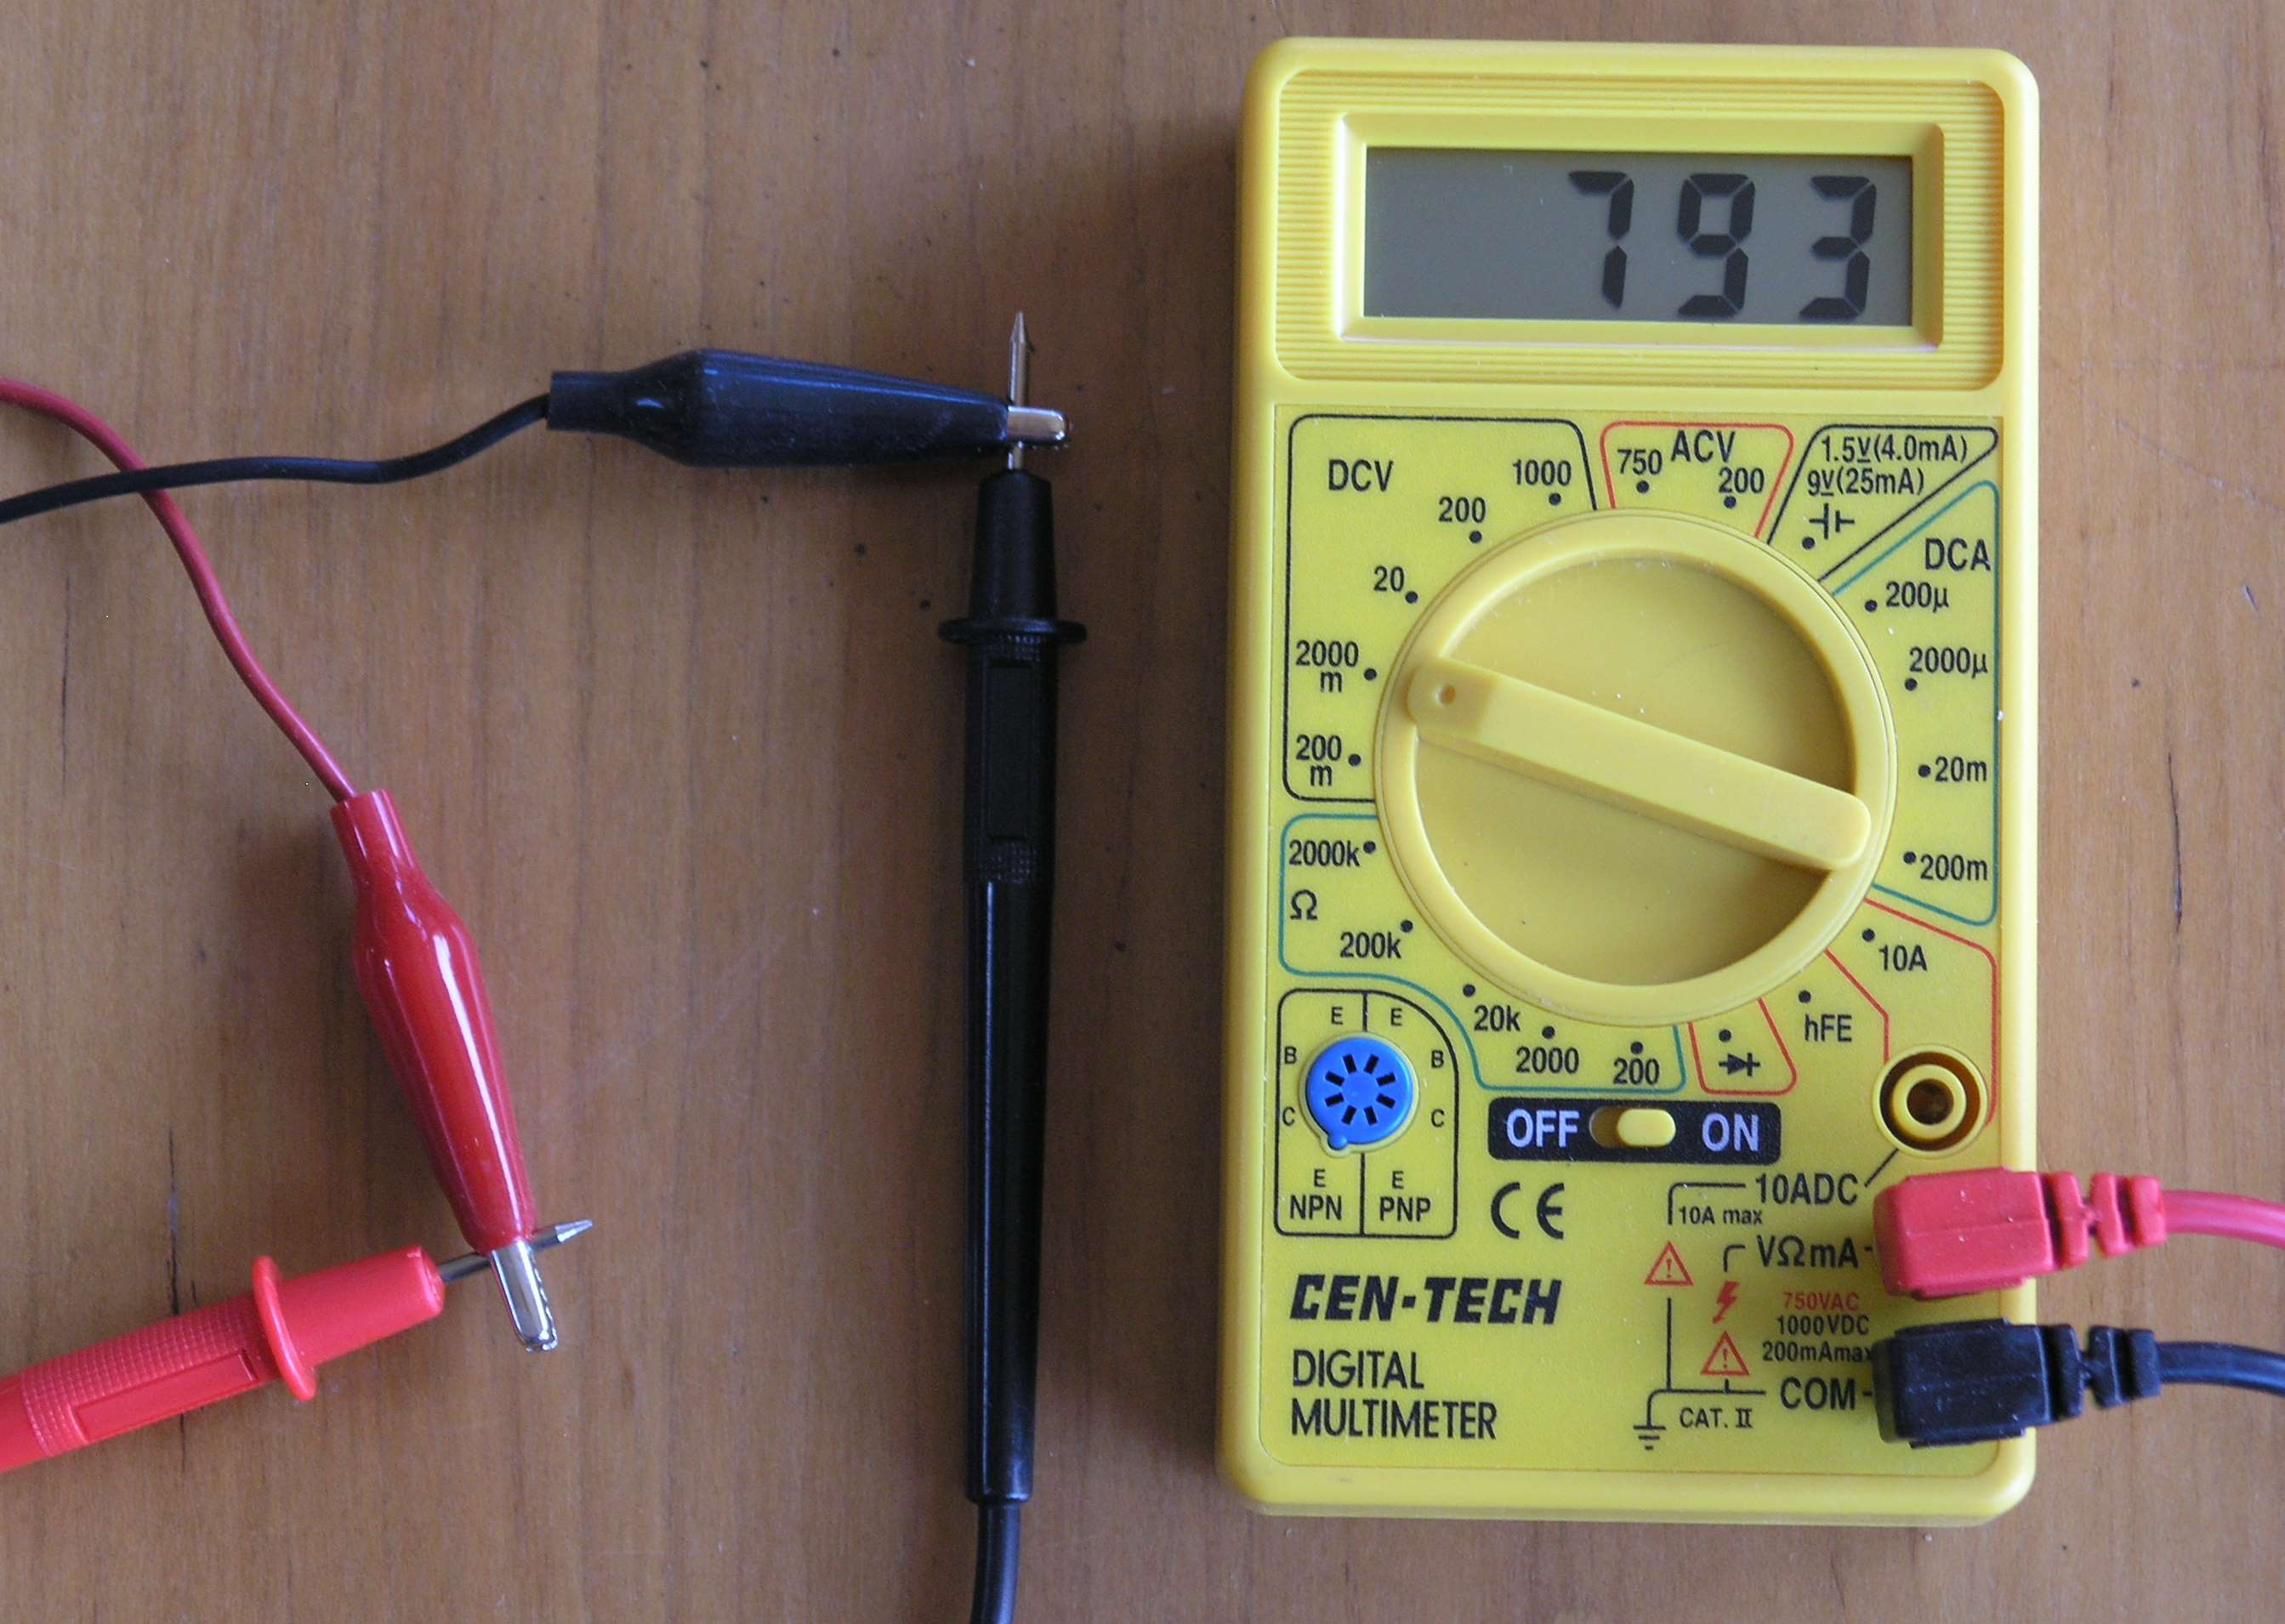 Chapter 10 Computers And Electronics Homemade Electronic Digital Audio Kit Thermometer With Pic16f84 Circuit